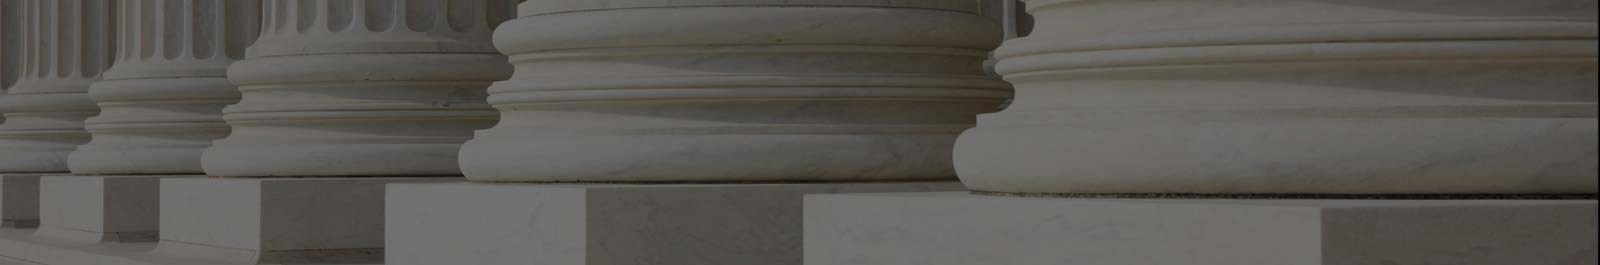 Header image - columns on an institutional building